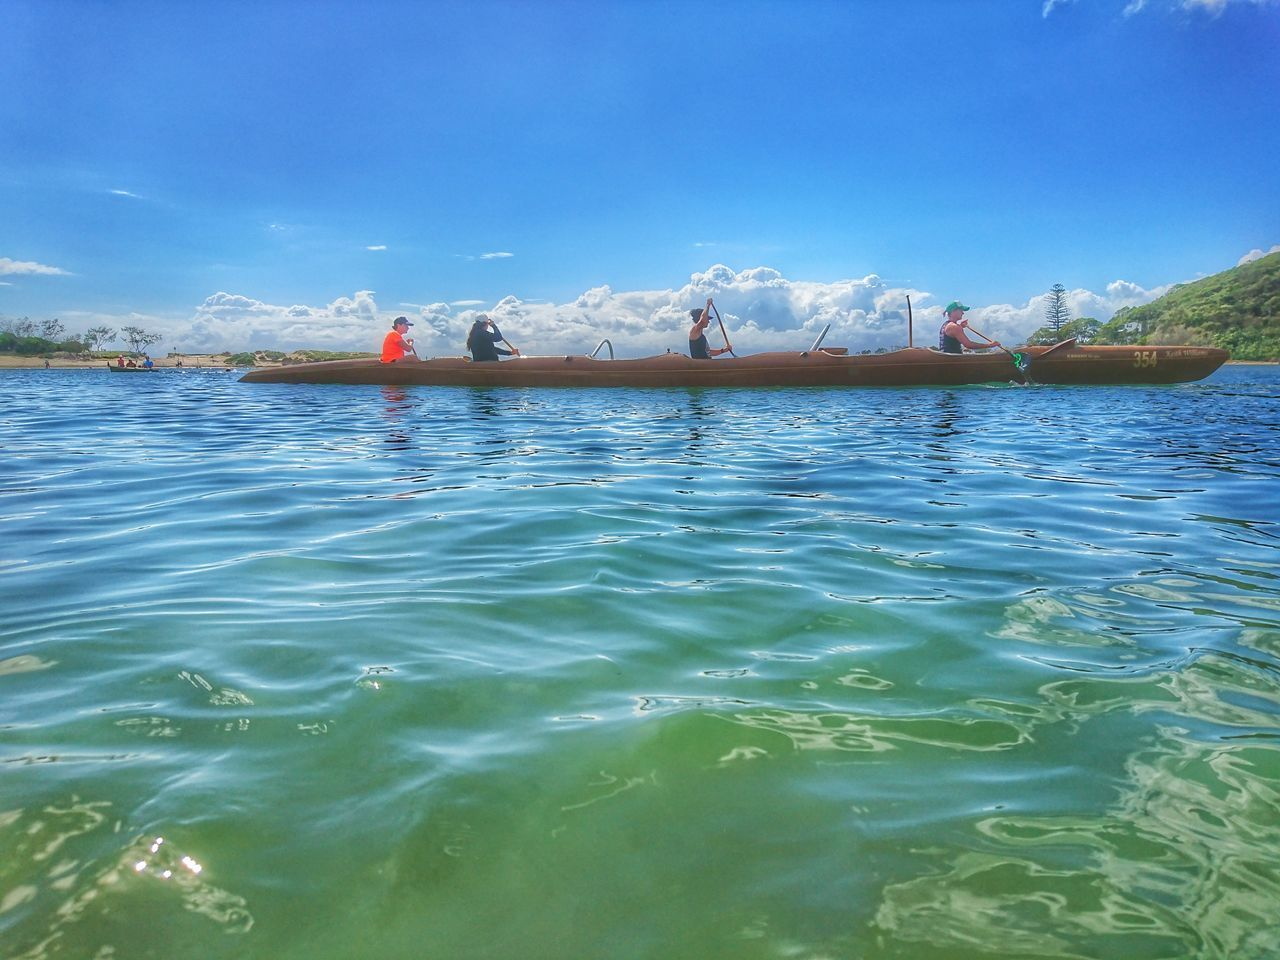 Sea Water Outdoors Sky Summer Vacations Beach Nature Blue Day Beauty In Nature People Scenics Clear Water Swimming Canoeing Beach Lovers Beach Activity Beach Fun Autumn🍁🍁🍁 Rowing Currumbincreek Goldcoastbeach